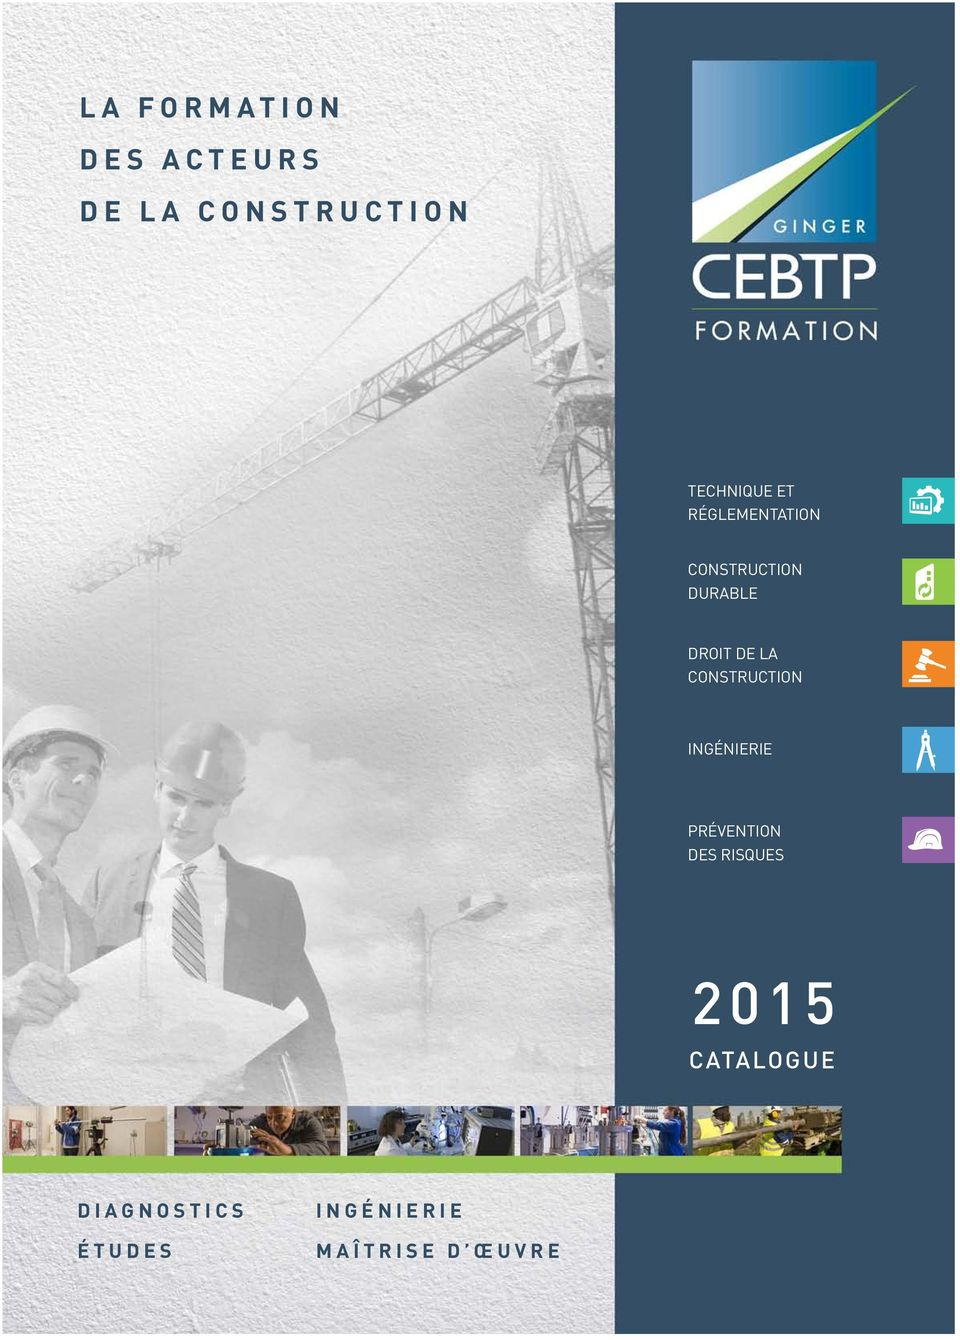 DE LA CONSTRUCTION, EXPERTISE CONSTRUCTION DURABLE PRÉVENTION DES RISQUES DROIT DE LA CONSTRUCTION, EXPERTISE ETUDES, CALCULS INGENIERIE, TRAVAUX CONSTRUCTION